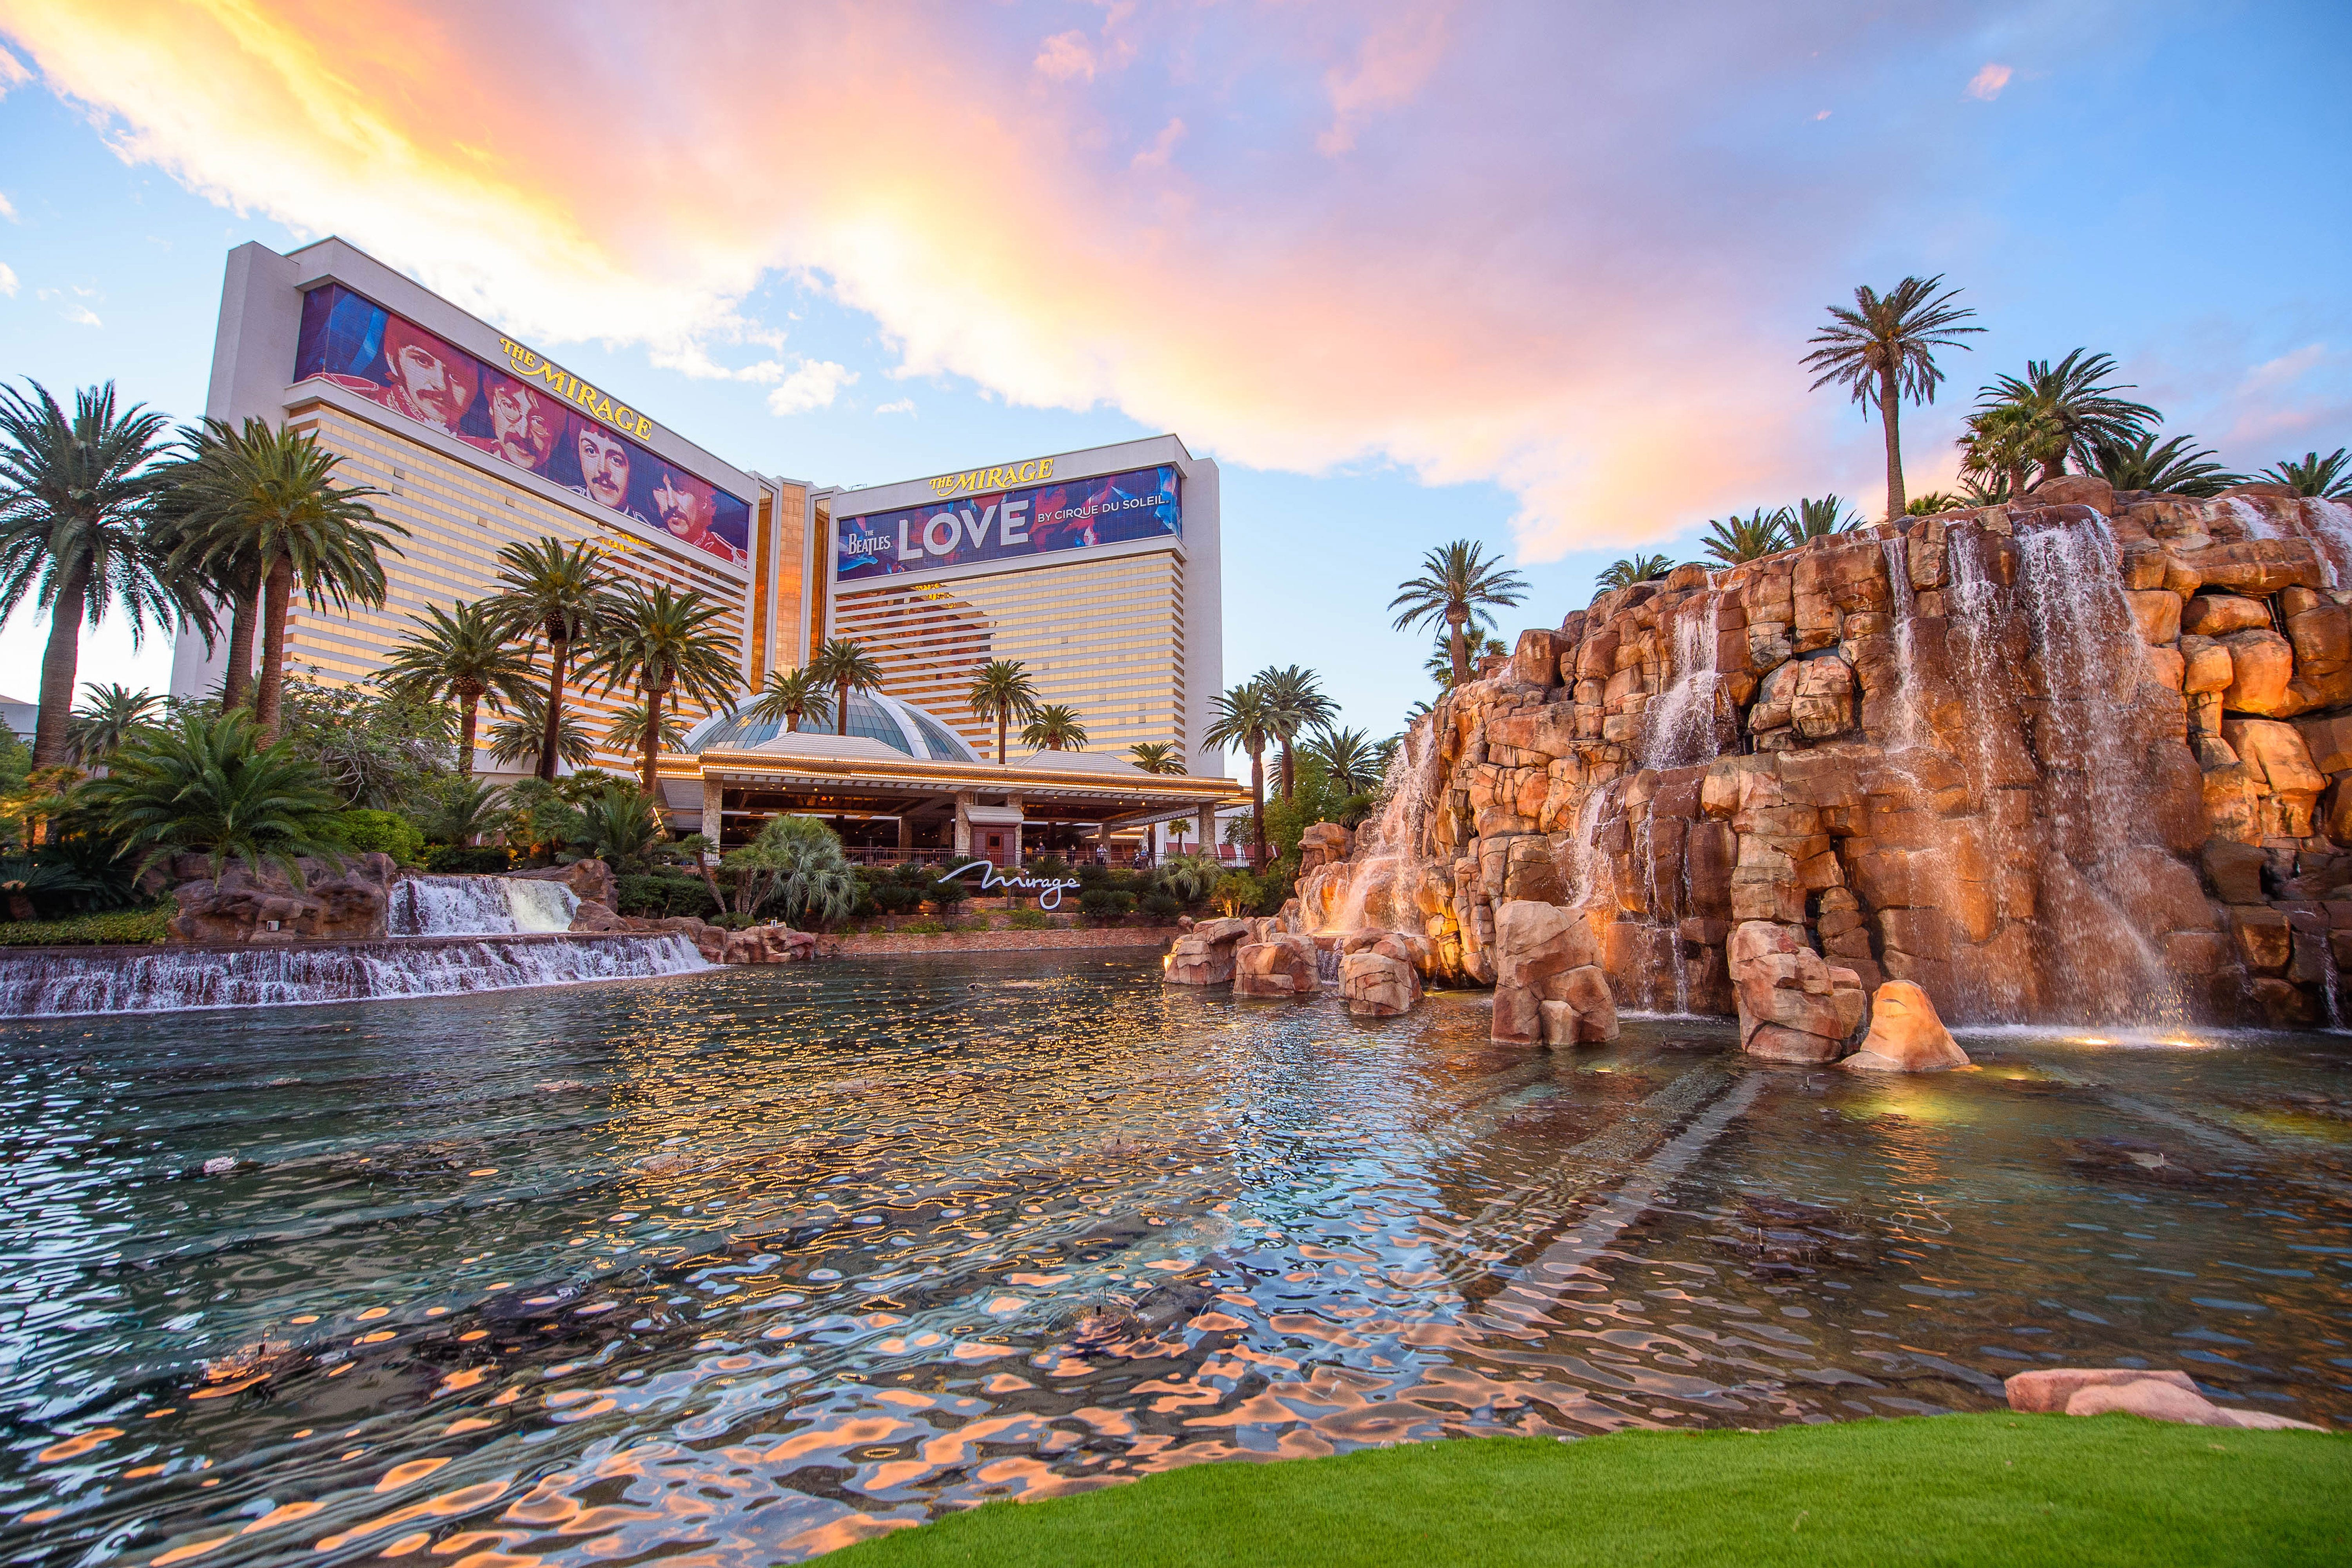 Planning a trip to Las Vegas? Make sure your favorite hotel is open.